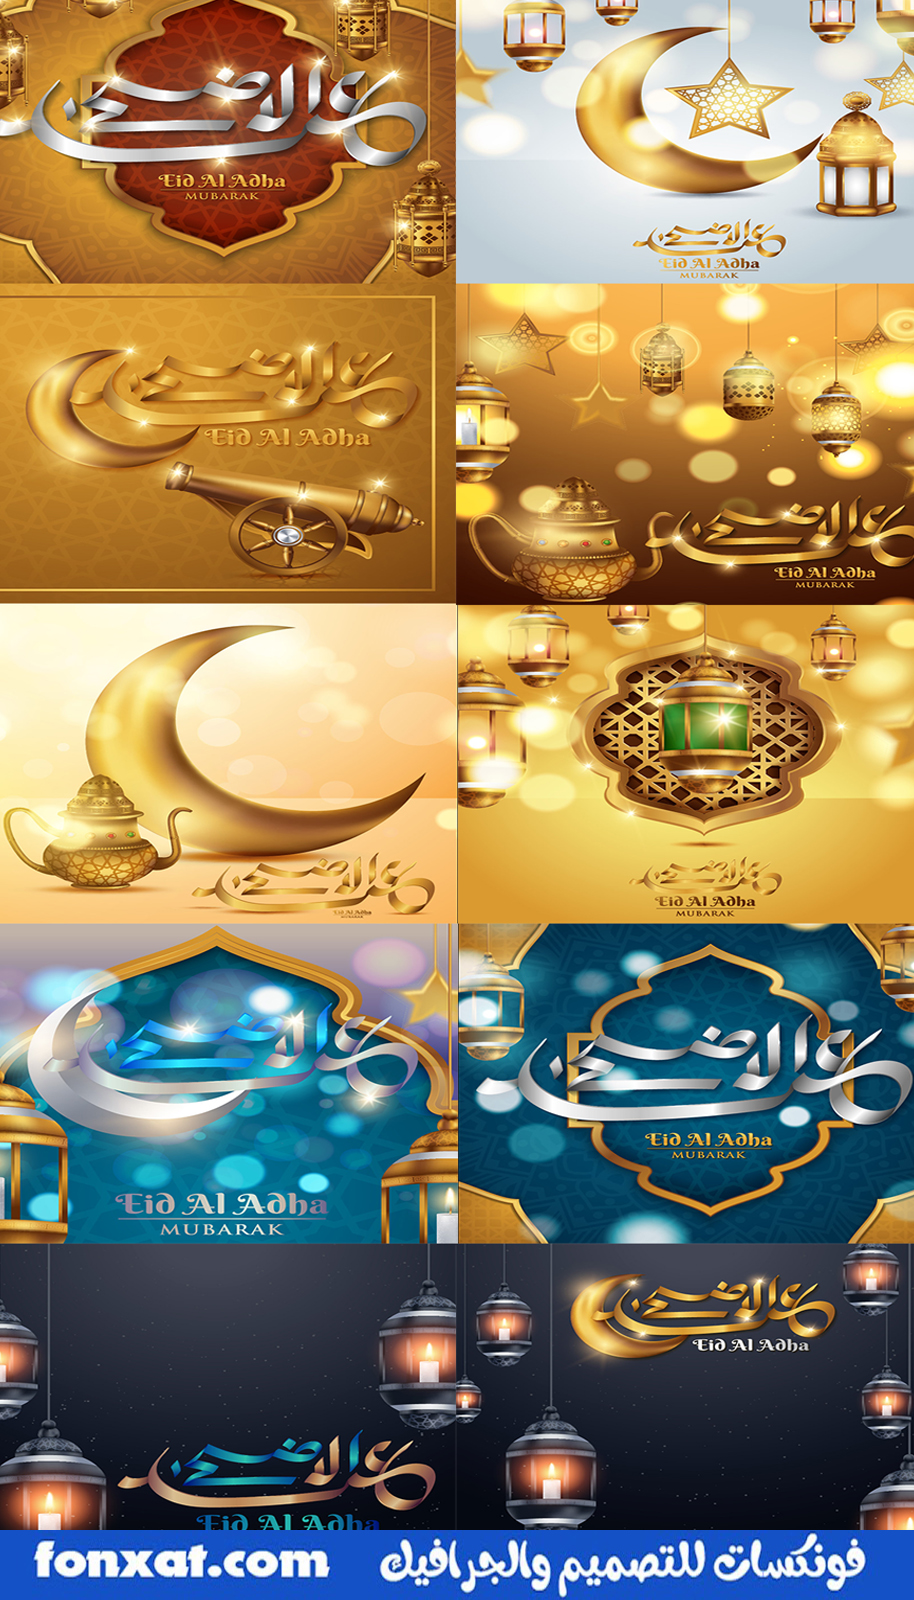 Victor Ramadan designs 2020, the most beautiful designs for the month of Ramadan